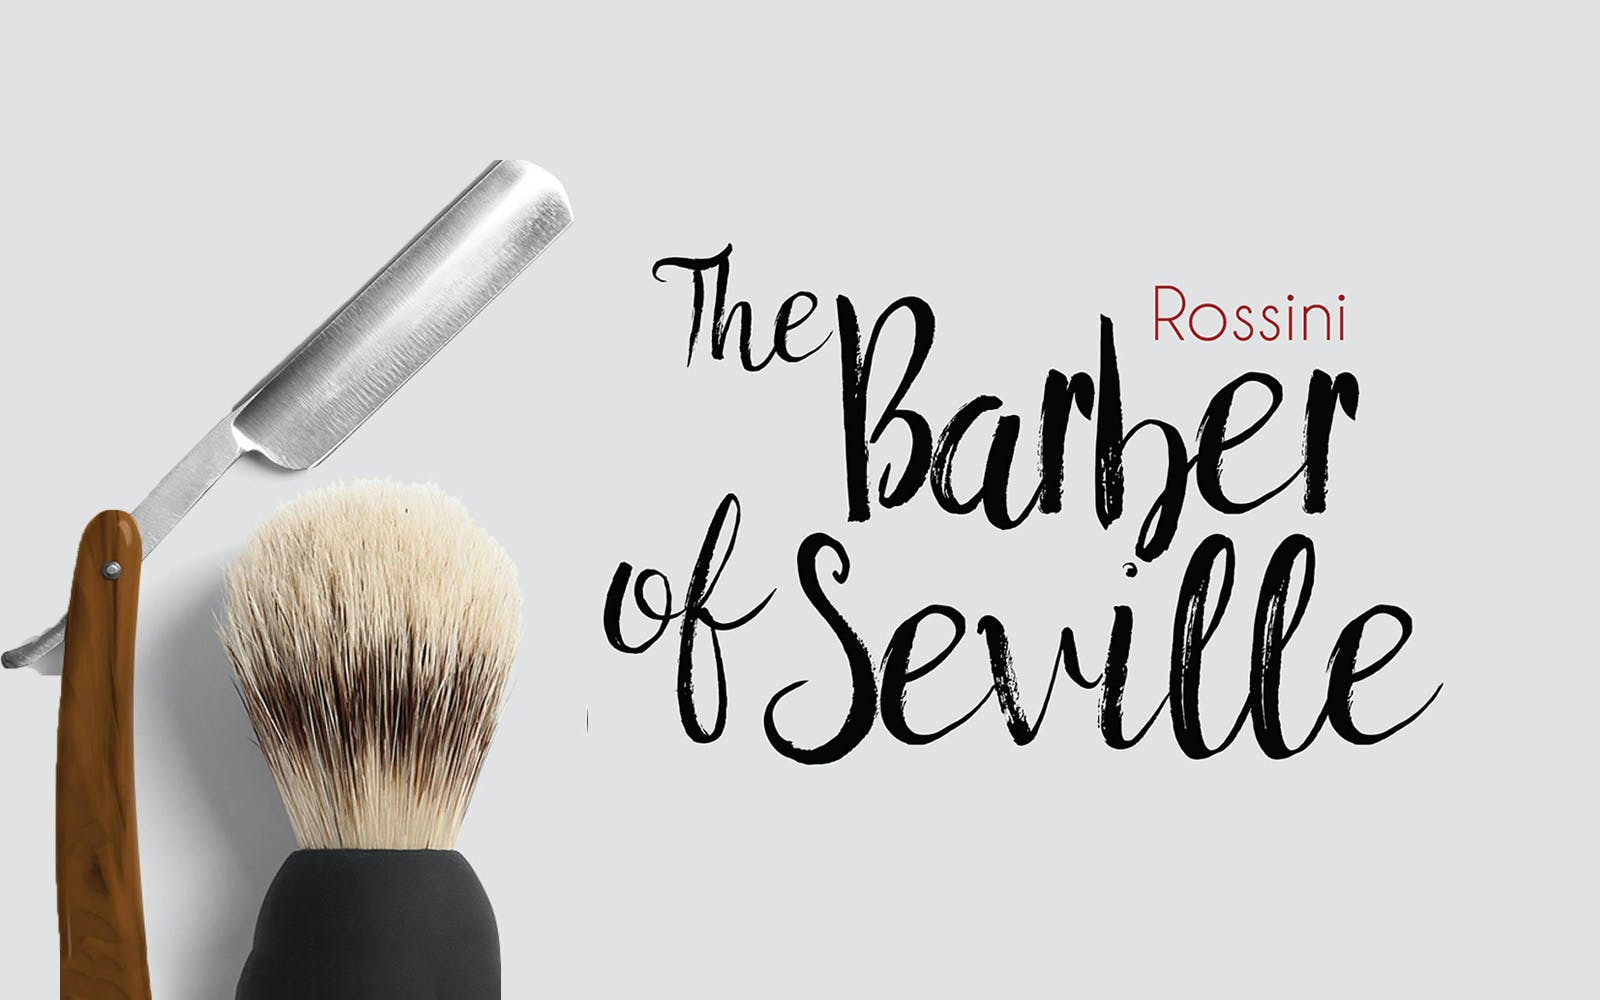 opera zuid performs rossini's the barber of seville-1